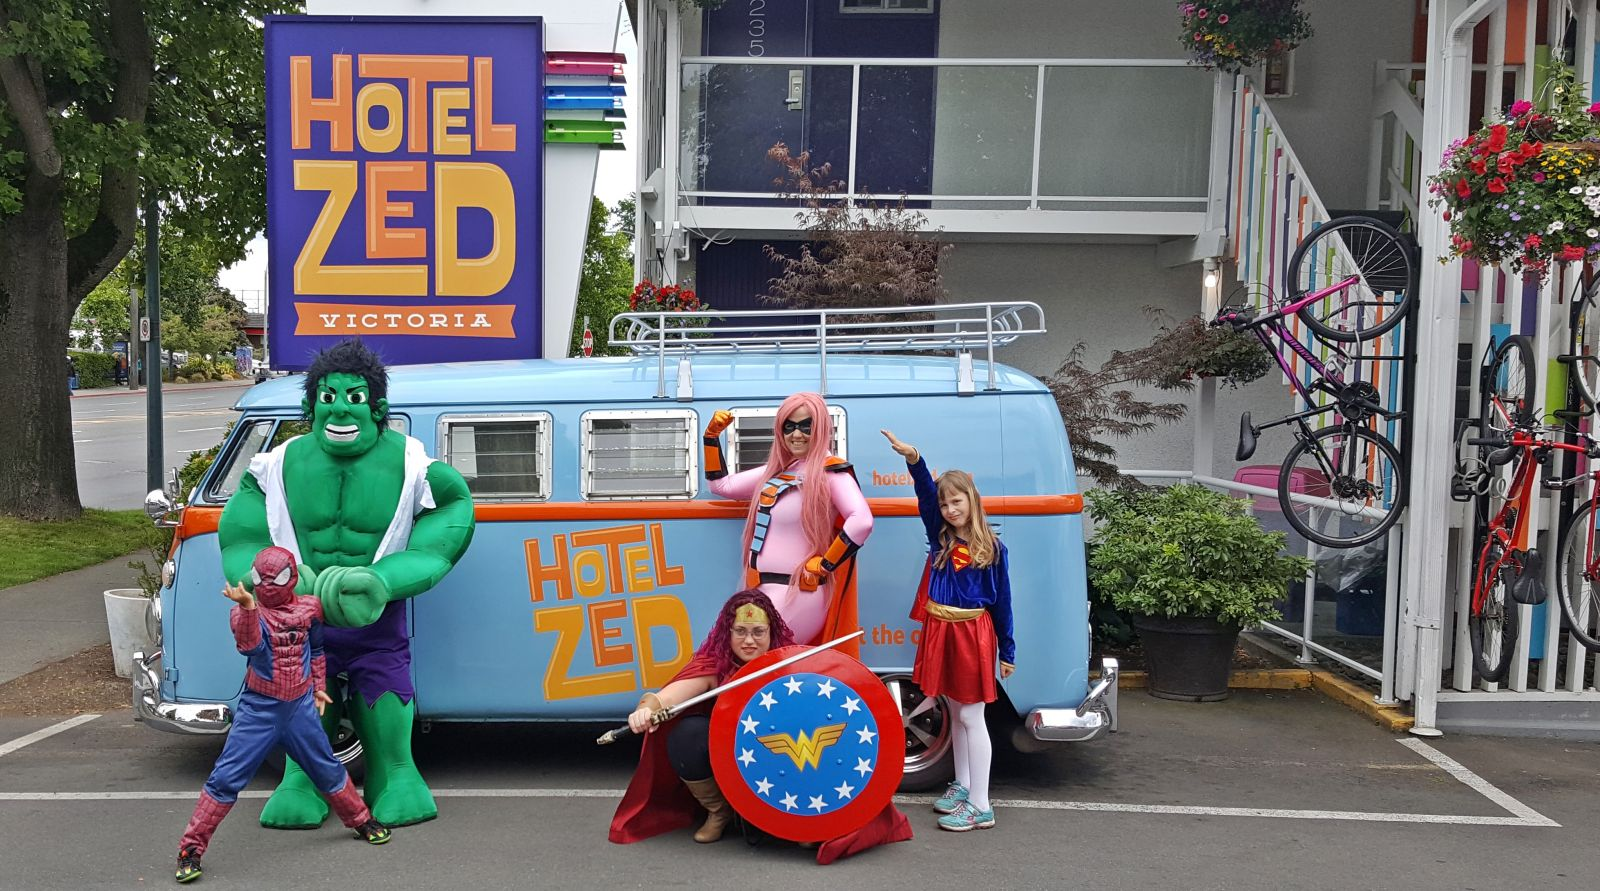 Superheros of Victoria at Hotel Zed